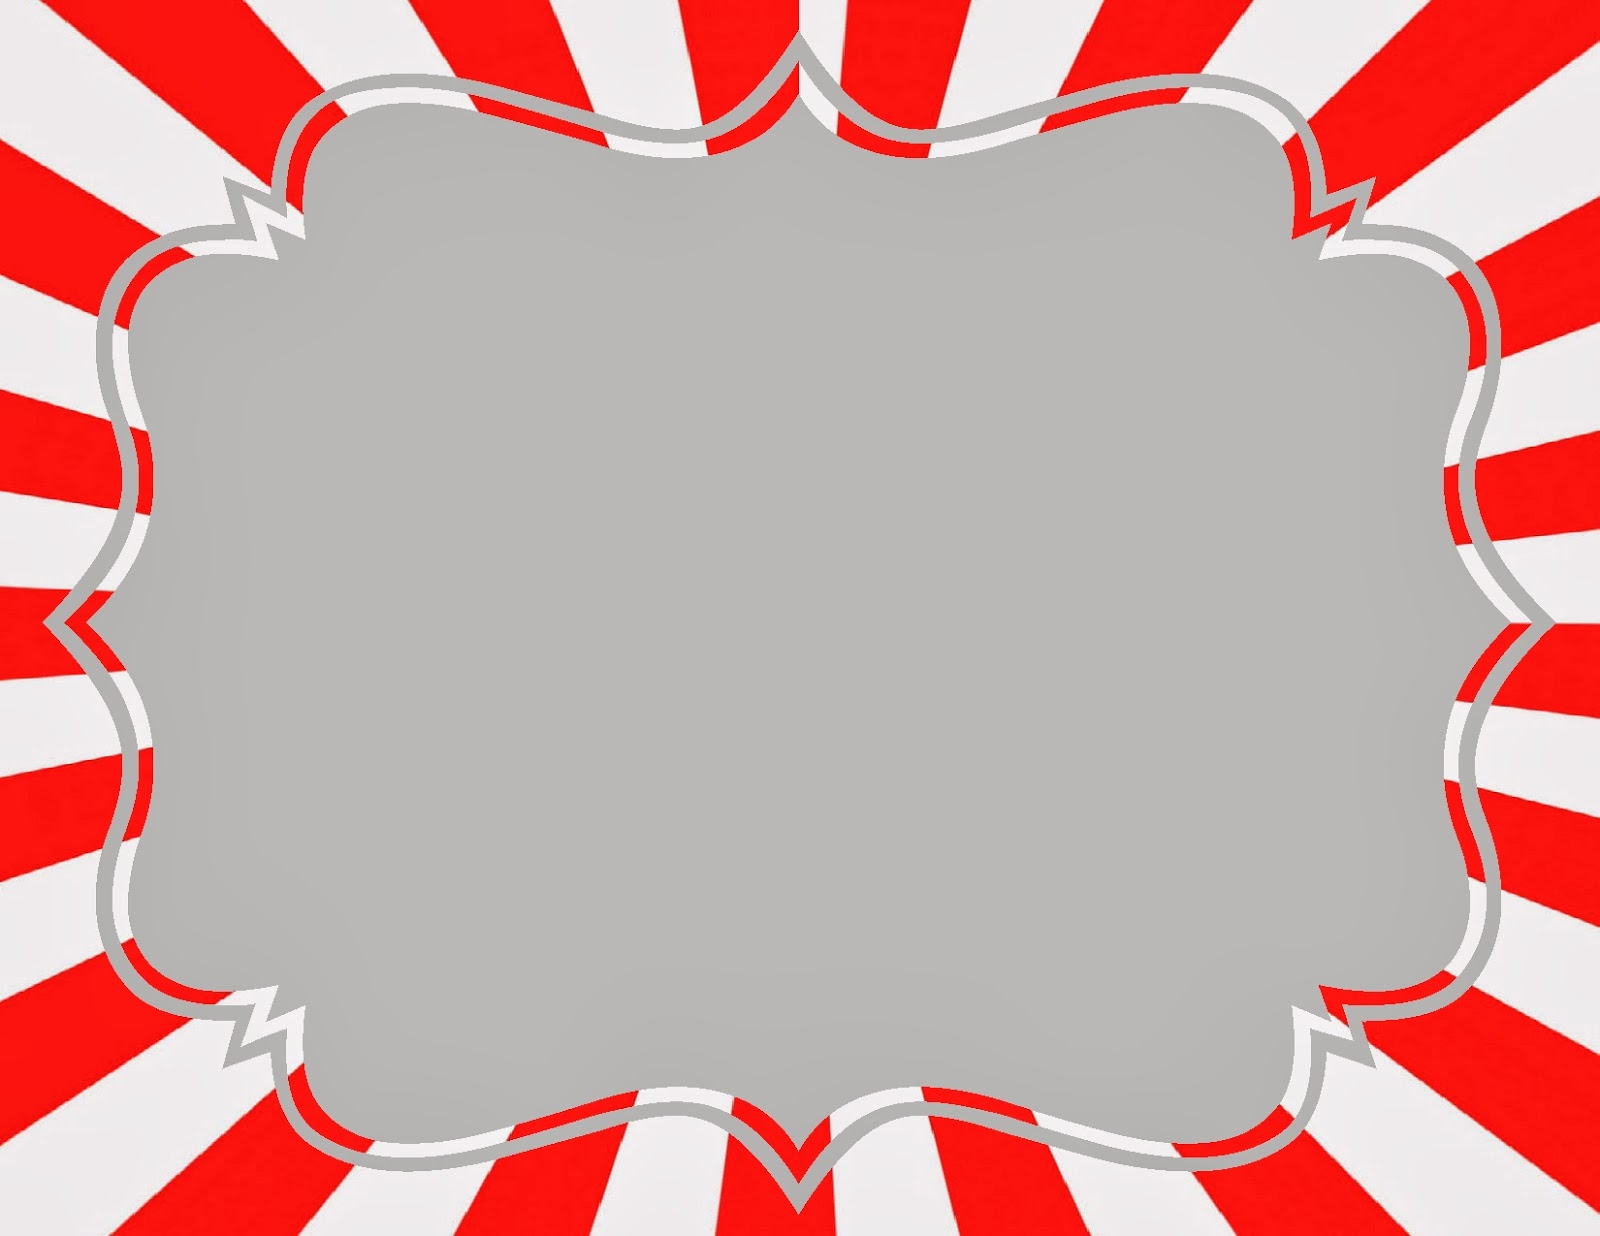 Diy Carnival Signs ~ The Red Balloon - Free Printable Carnival Signs